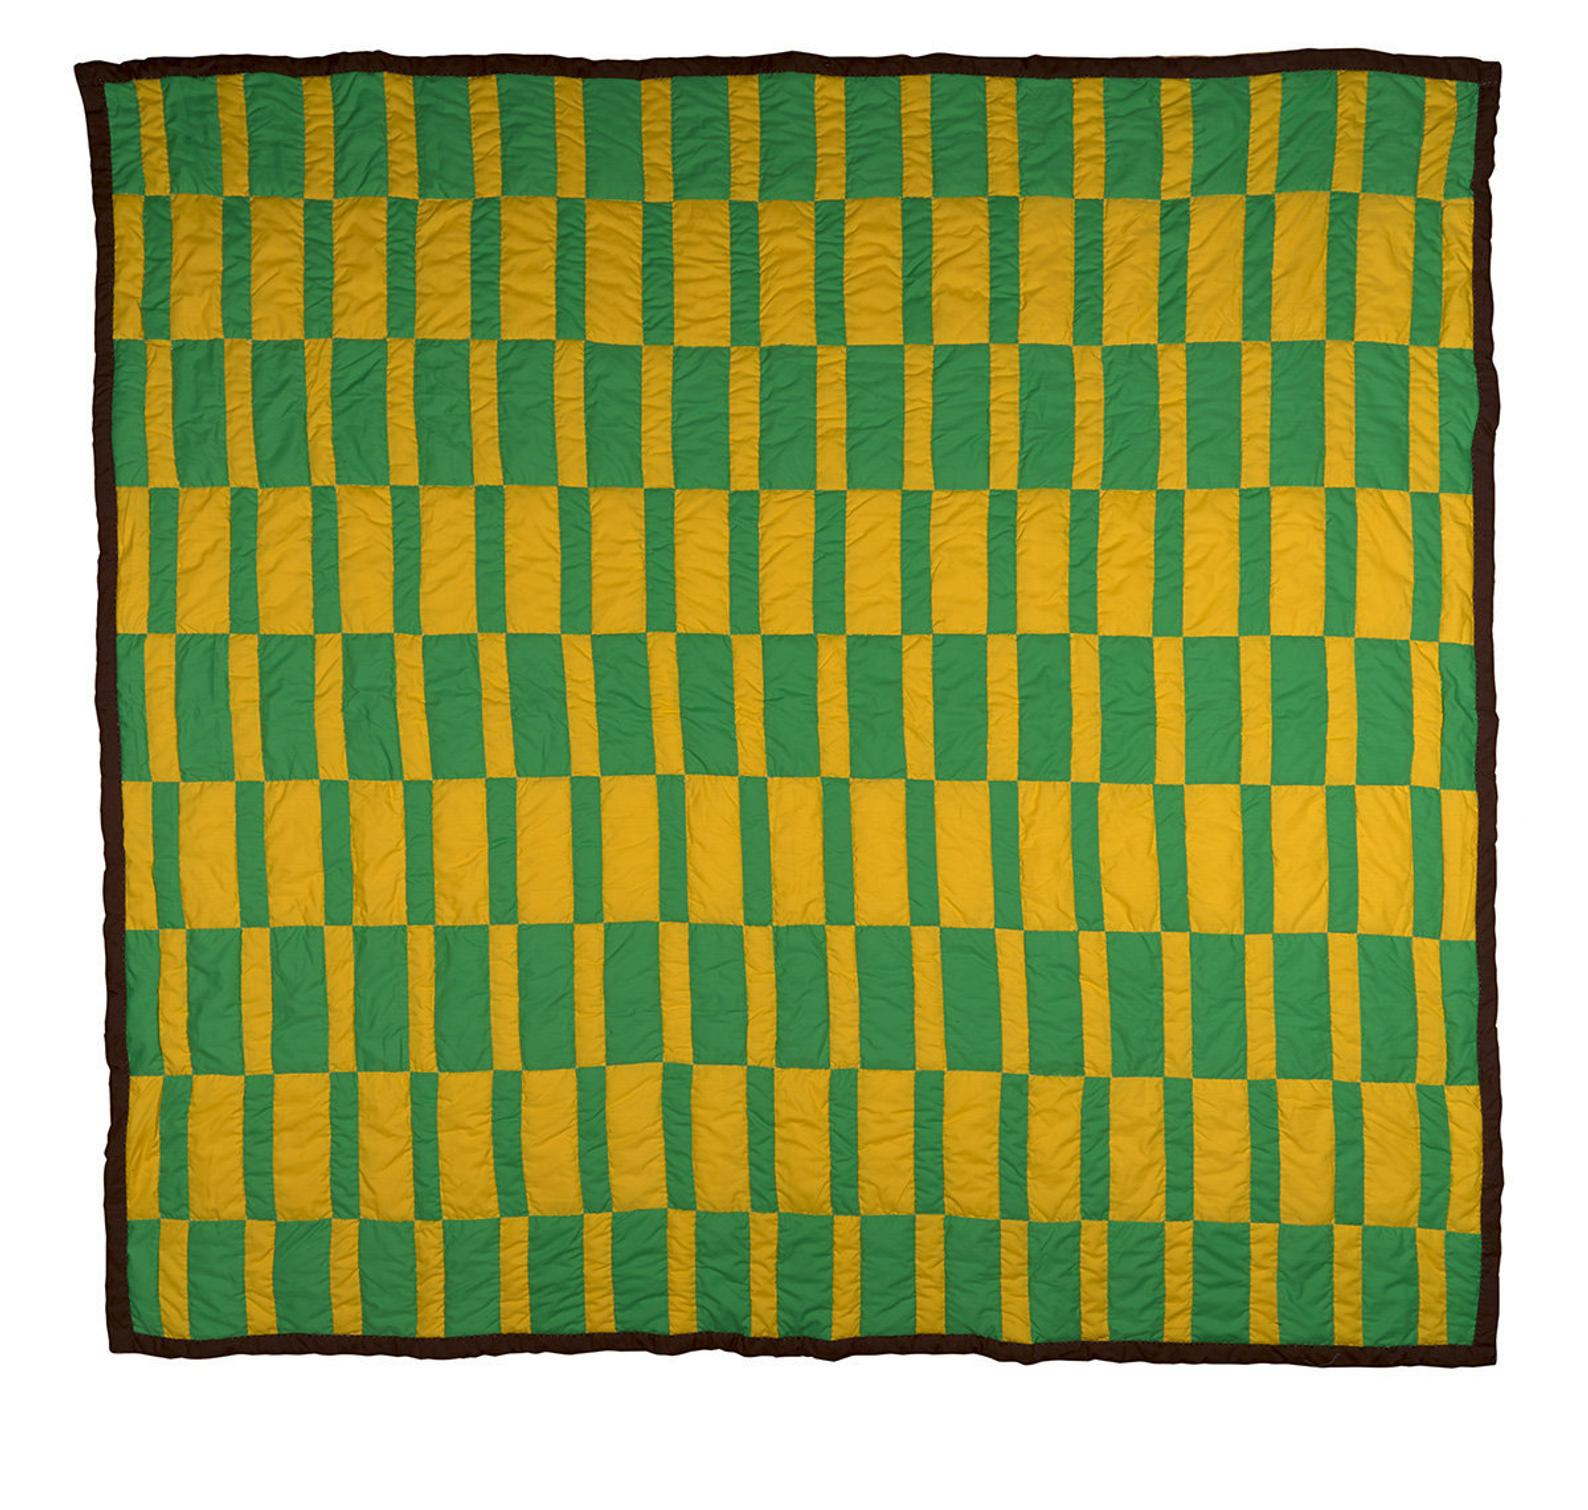 Green and Yellow Basketweave Quilt